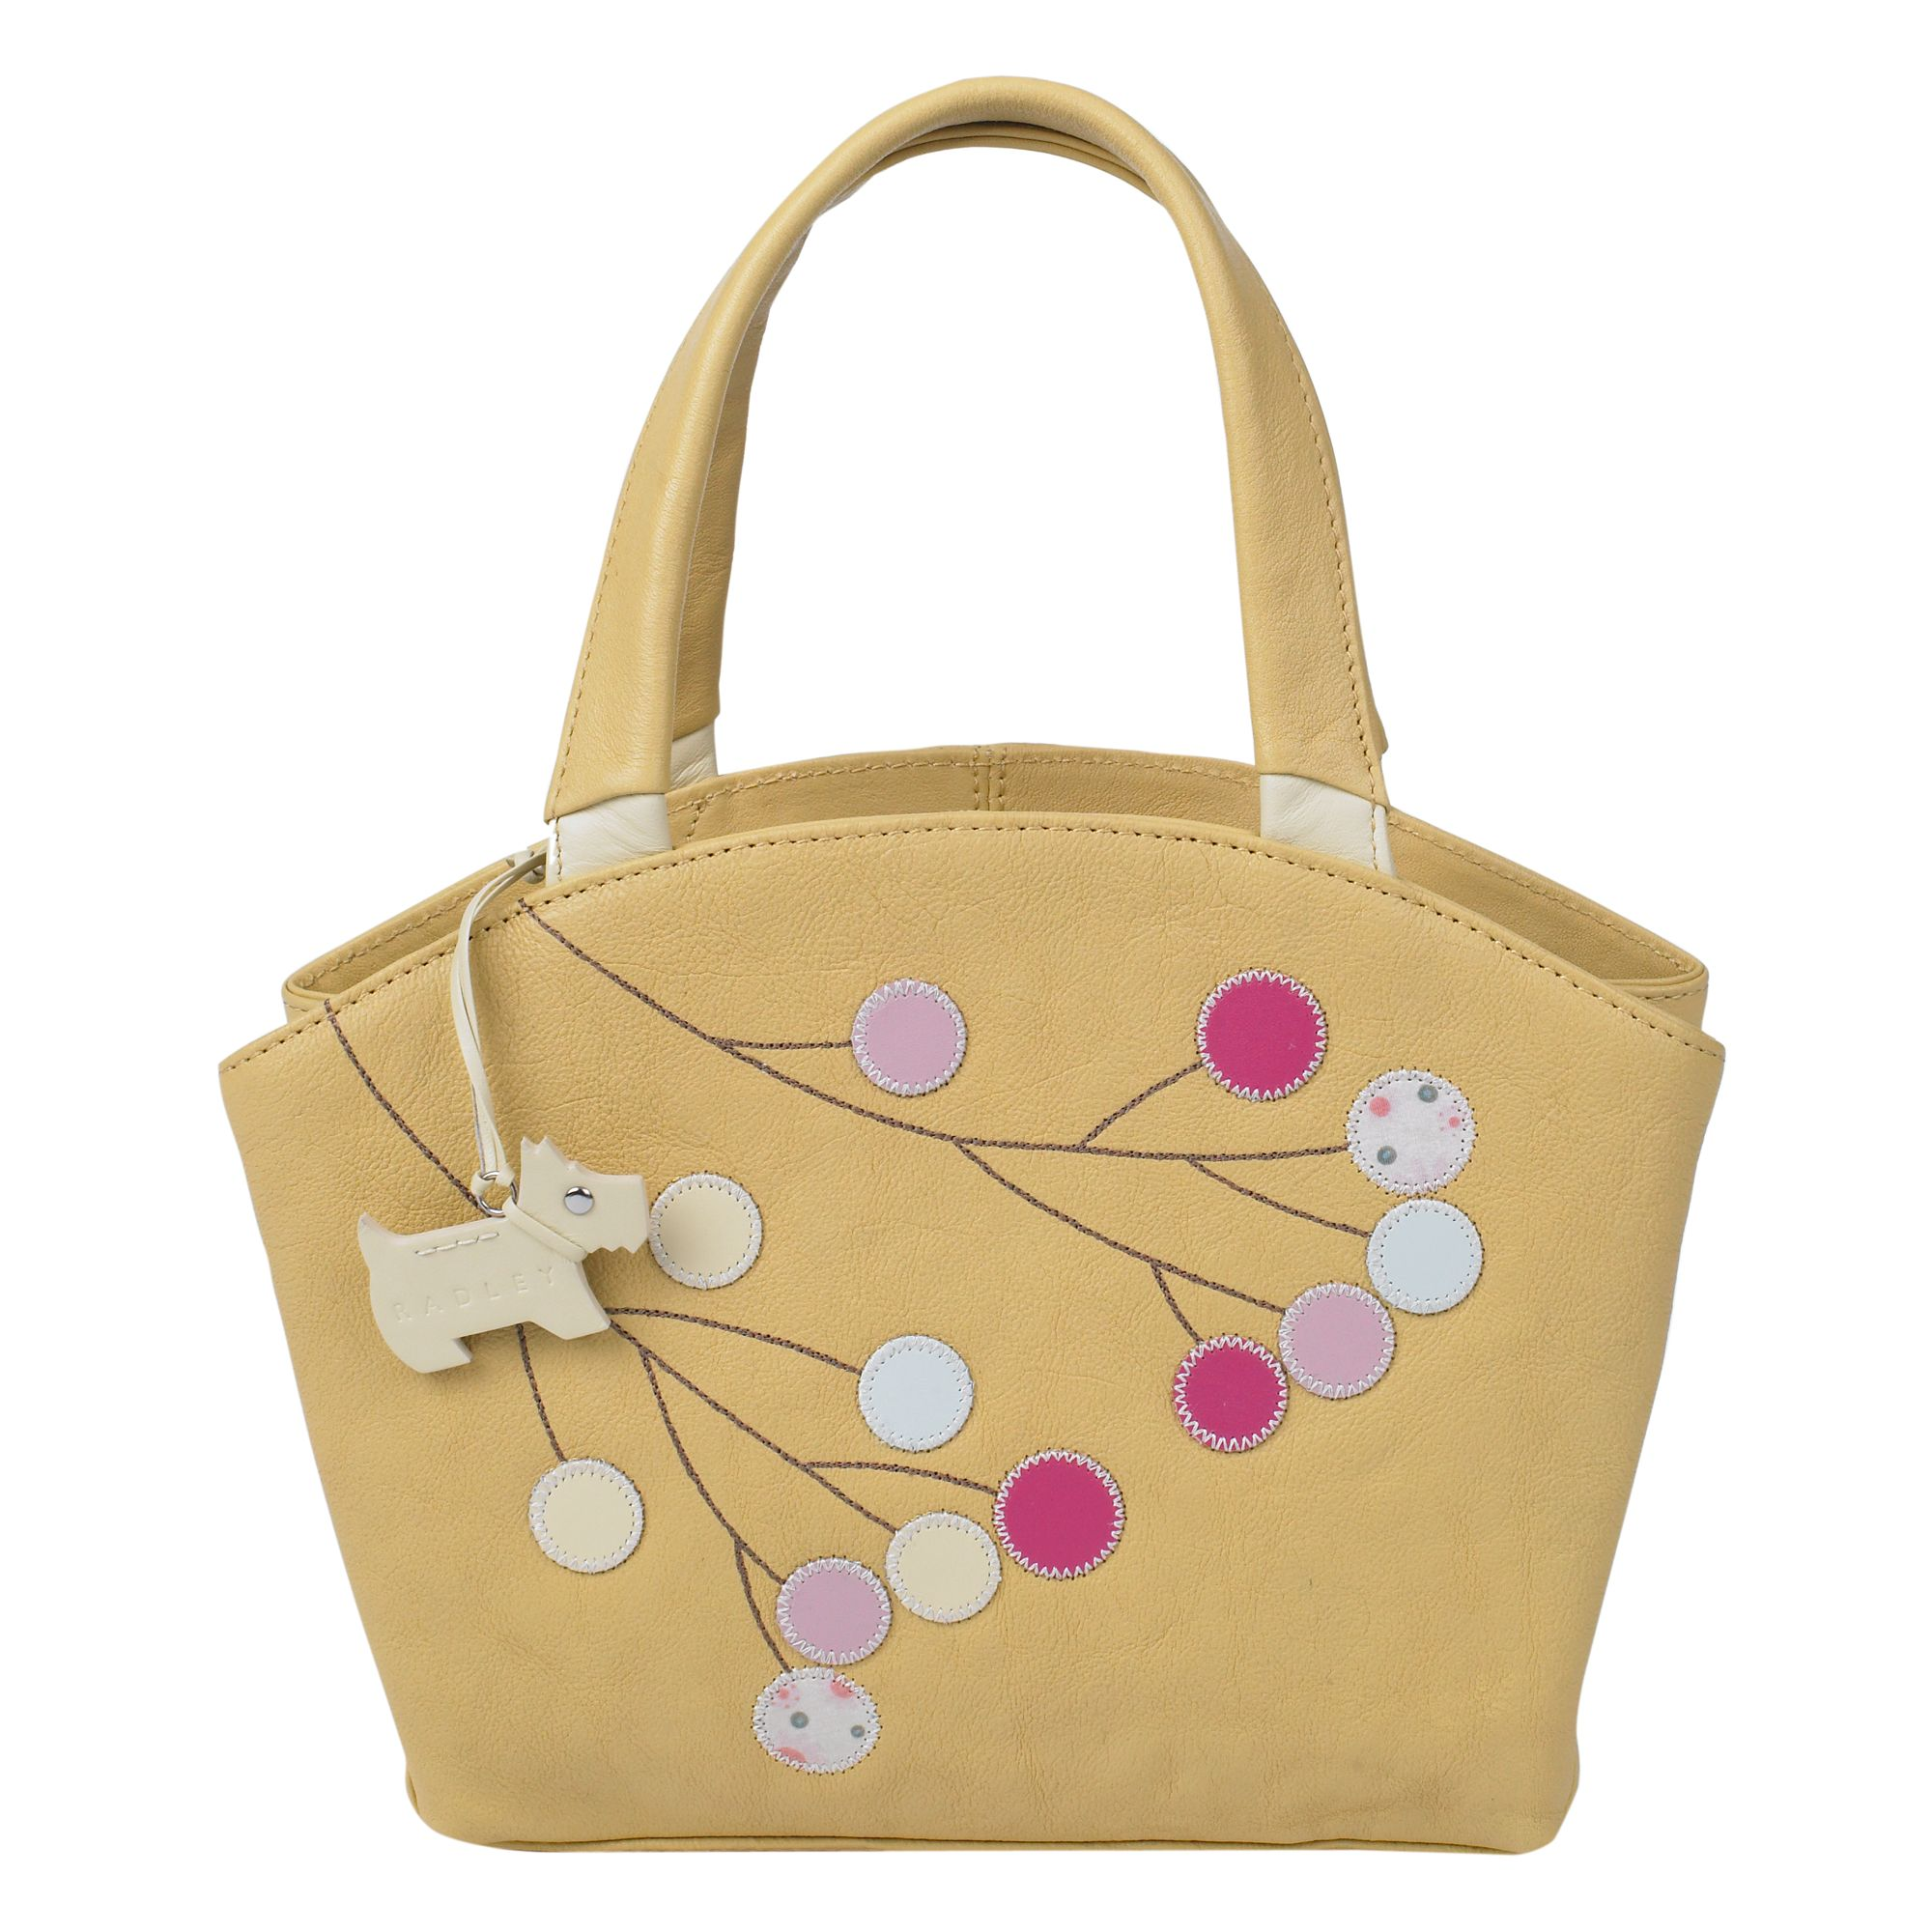 Summer Berries small leather hand held tote bag